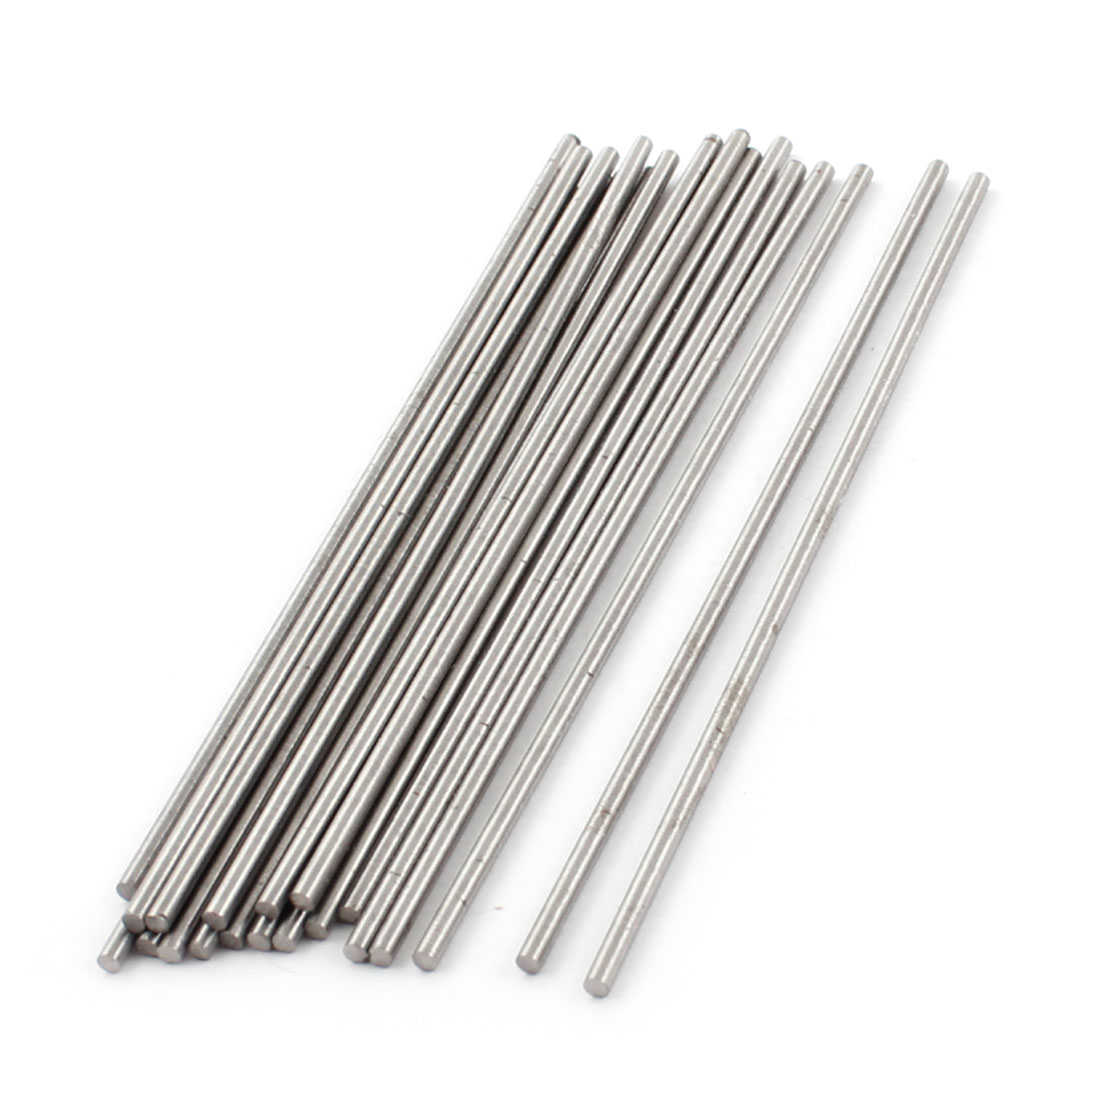 Unique Bargains 2mm x 100mm Silver Tone HSS Straight Turning Tool Round Lathe Rod 20Pcs